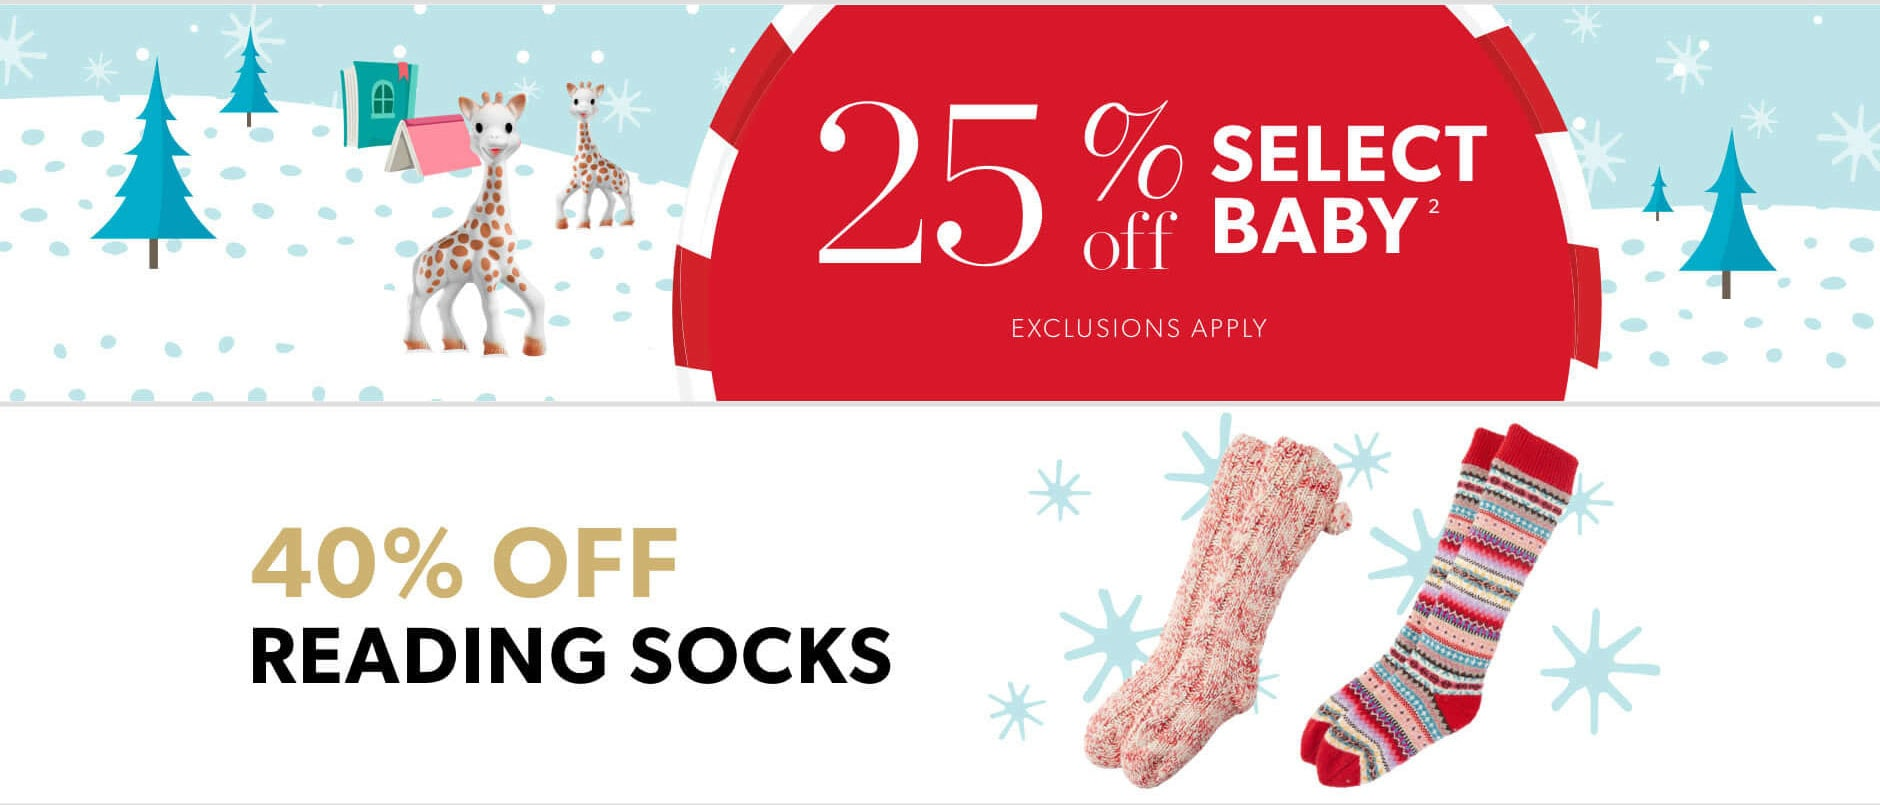 Black Friday In-Store Only: 25% off select baby (exclusions apply) & 40% reading socks